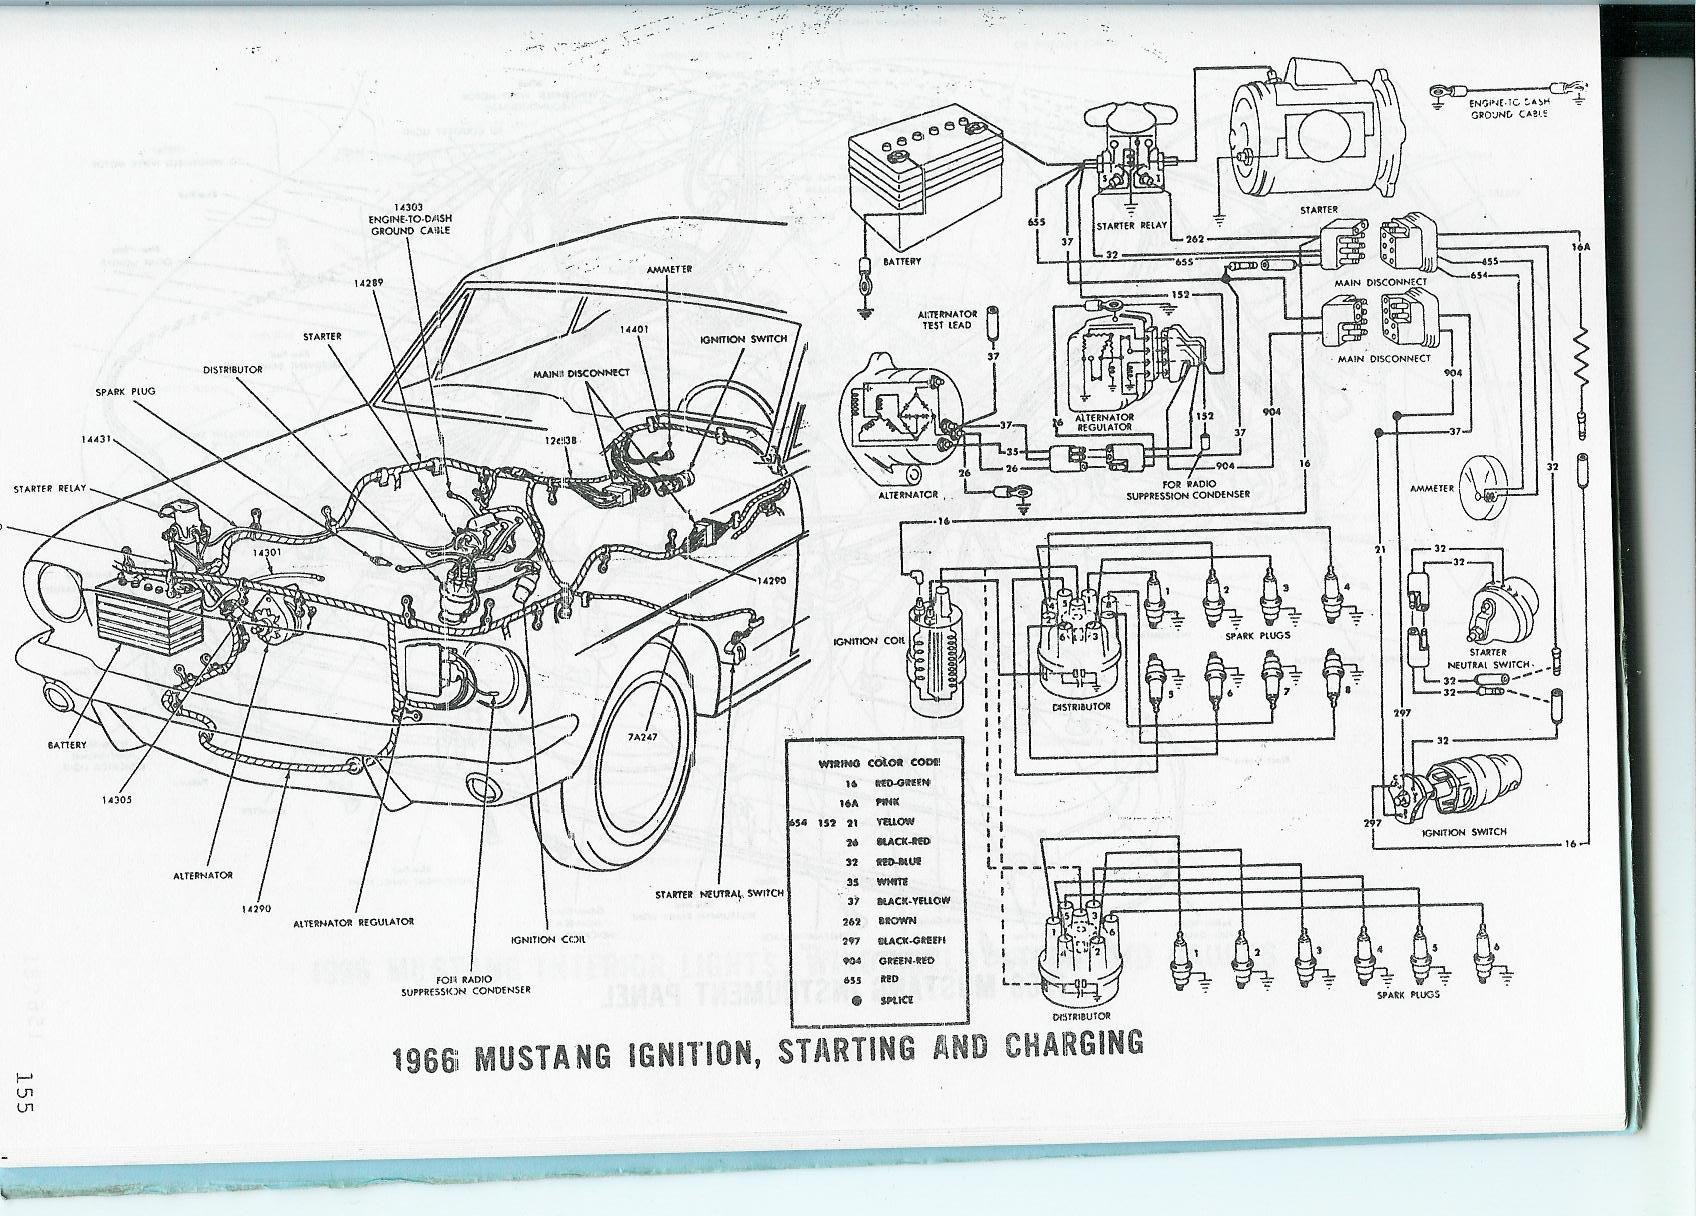 88 mustang 5 0 wiring diagram 1965 mustang no power to lights ignition or dash - ford ... 1964 5 mustang wiring diagram dash #14